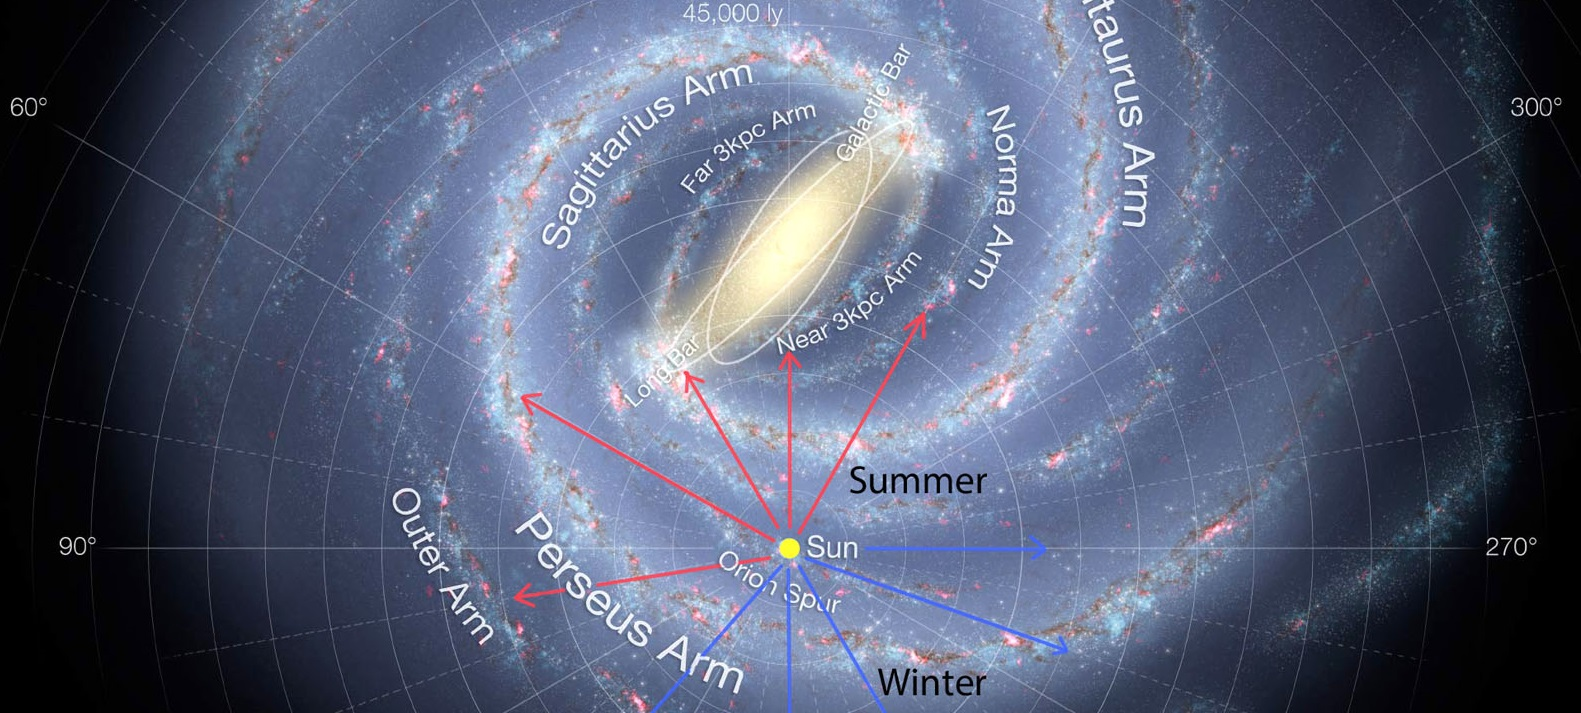 The Milky Way structure. The History of the universe